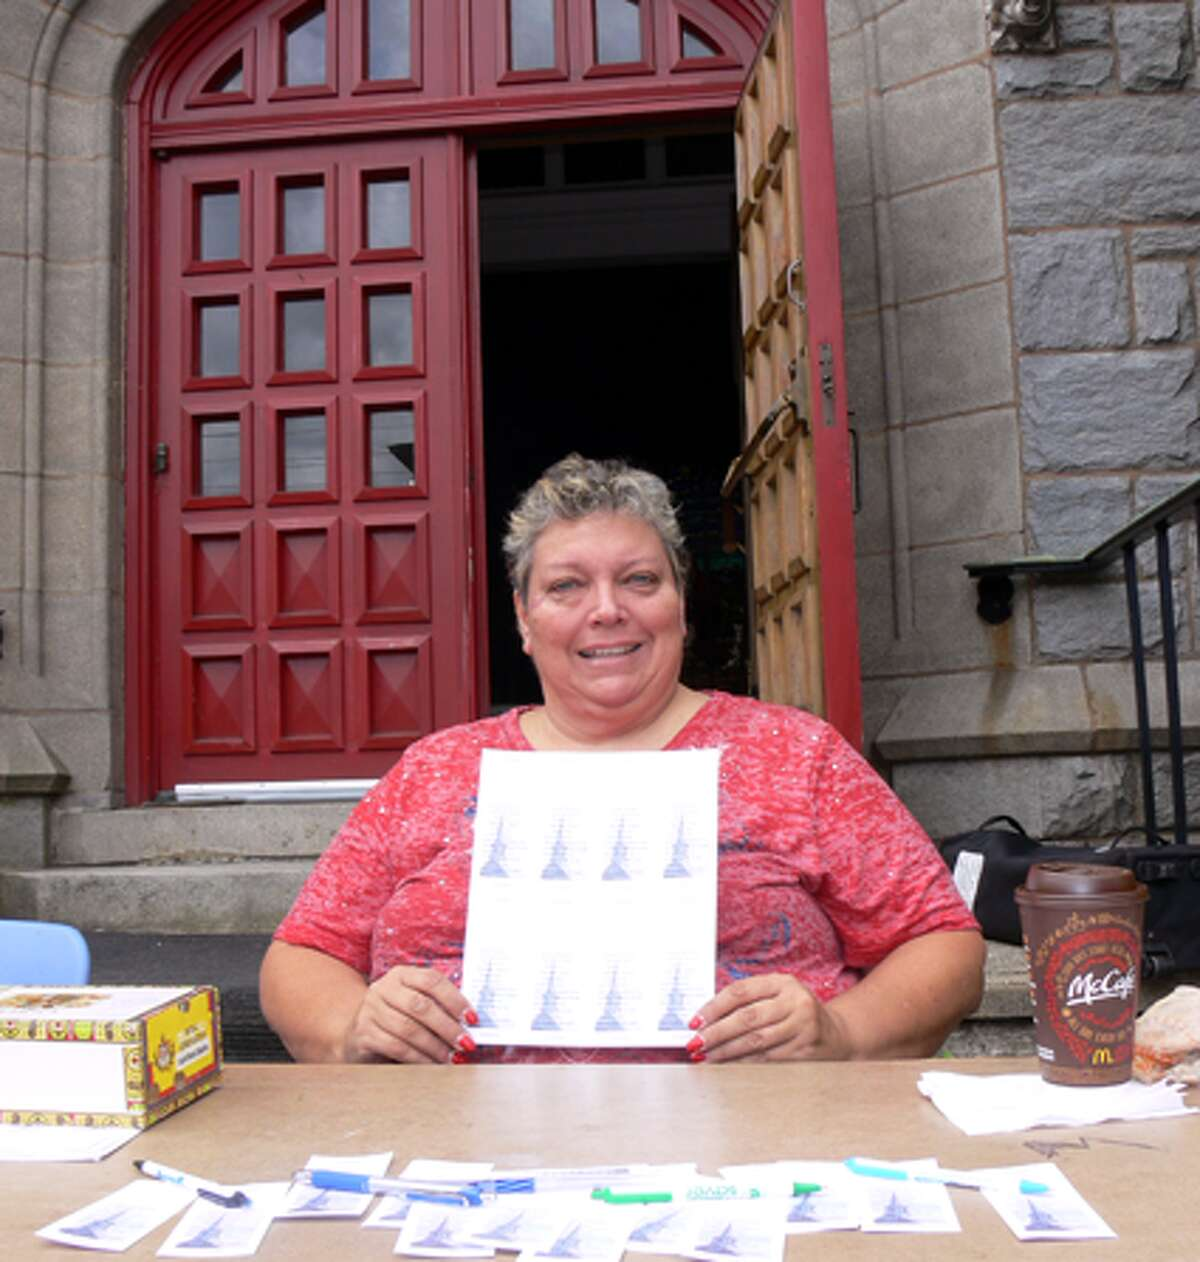 Diane Goodman holds up raffle information at the Shepherd Fall Fair in Shelton, which she helped to organize as an active member of the local Episcopal church.